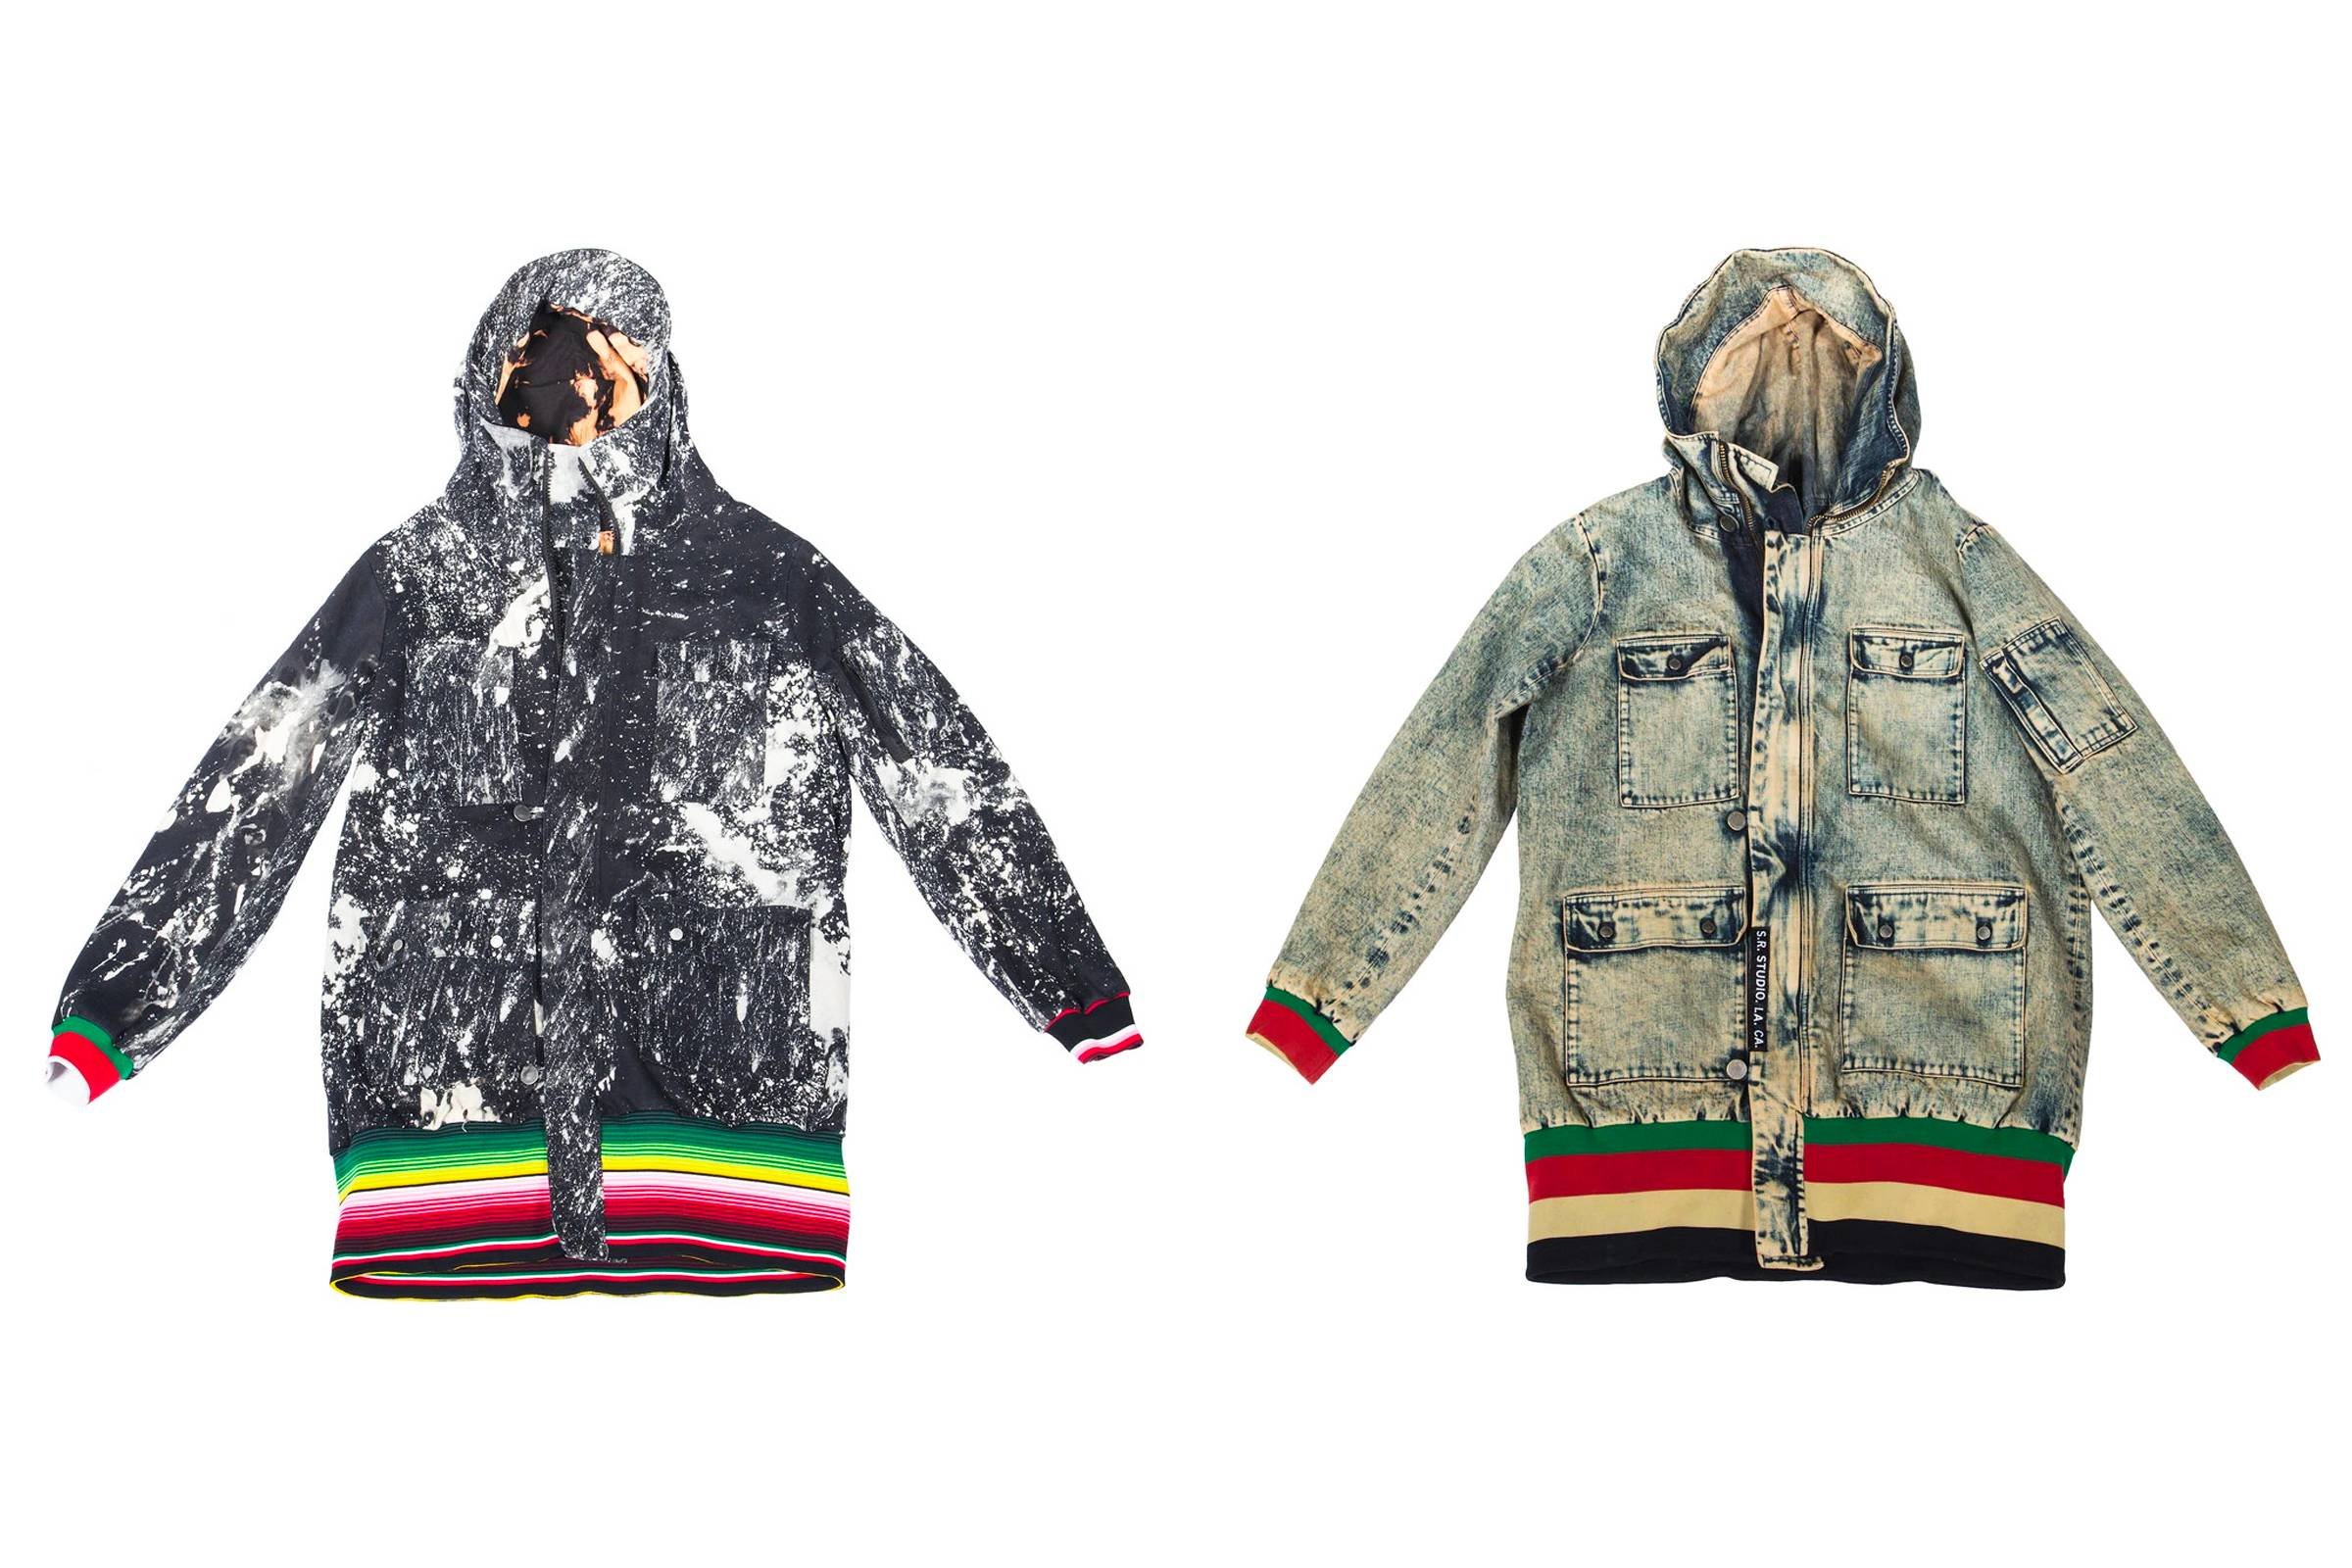 """306 Hooded Coat (#5862.0002),"" 2013 (left) and ""306 Hooded Coat (#5862.0001),"" 2014."